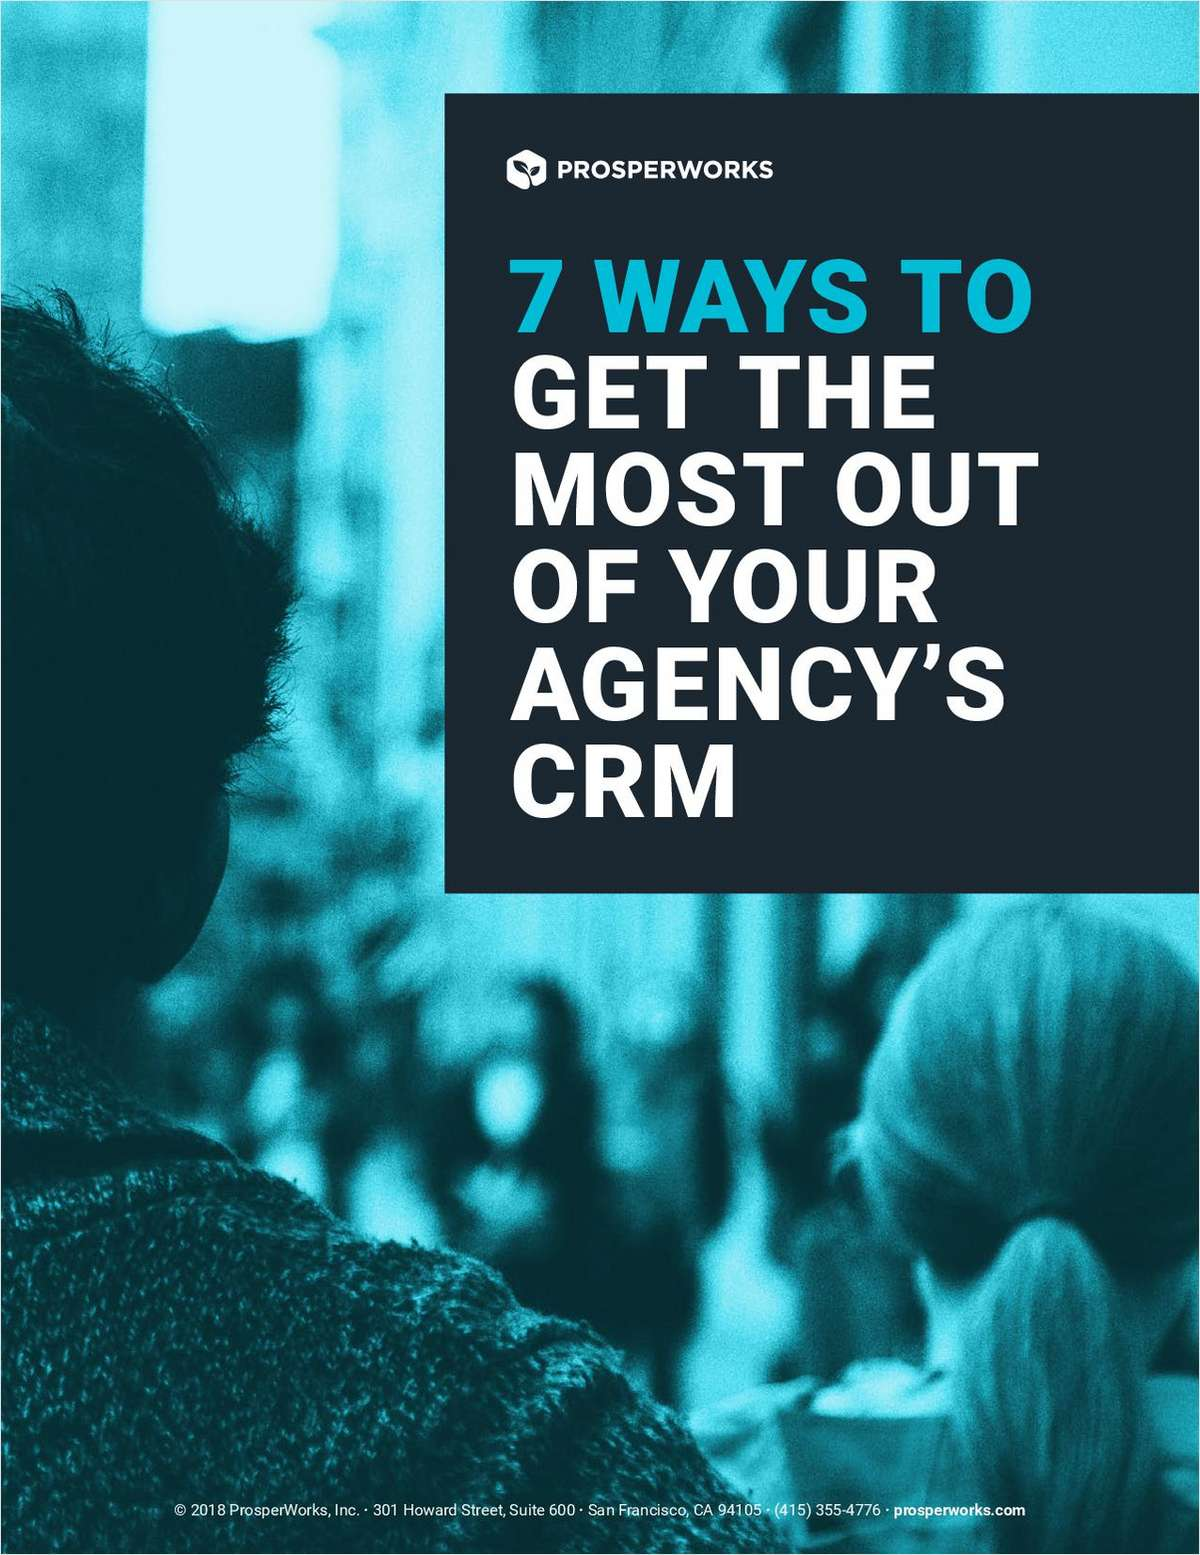 7 Ways to Get the Most Out of Your Agency's CRM